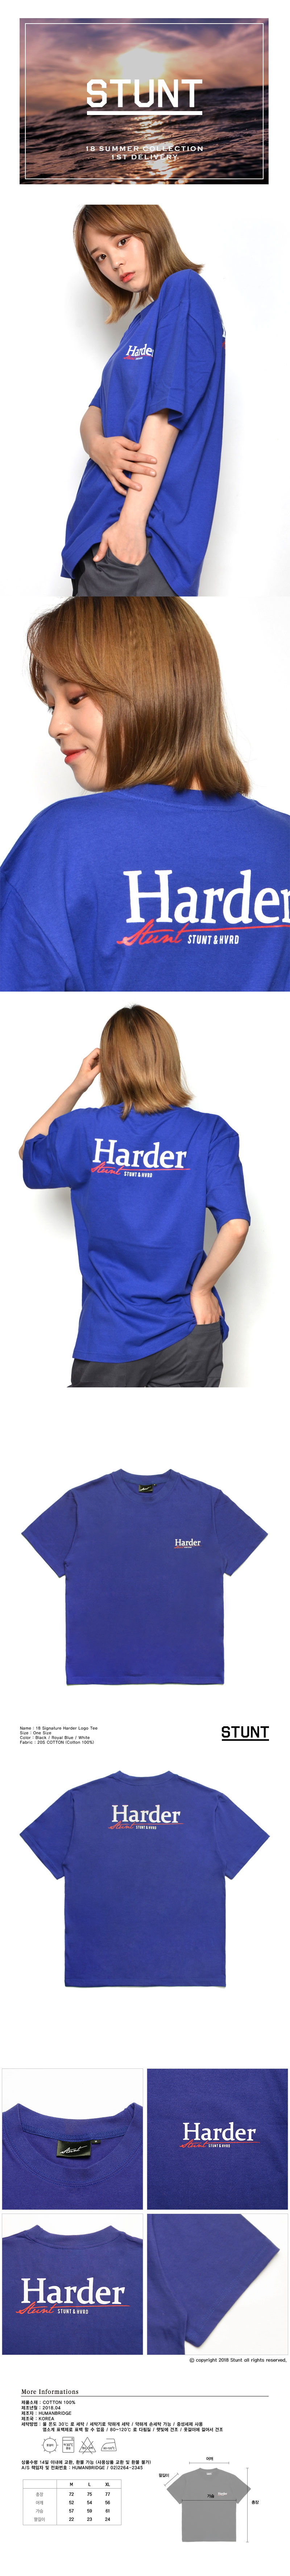 18-signature-harder-logo-tee-(blue).jpg